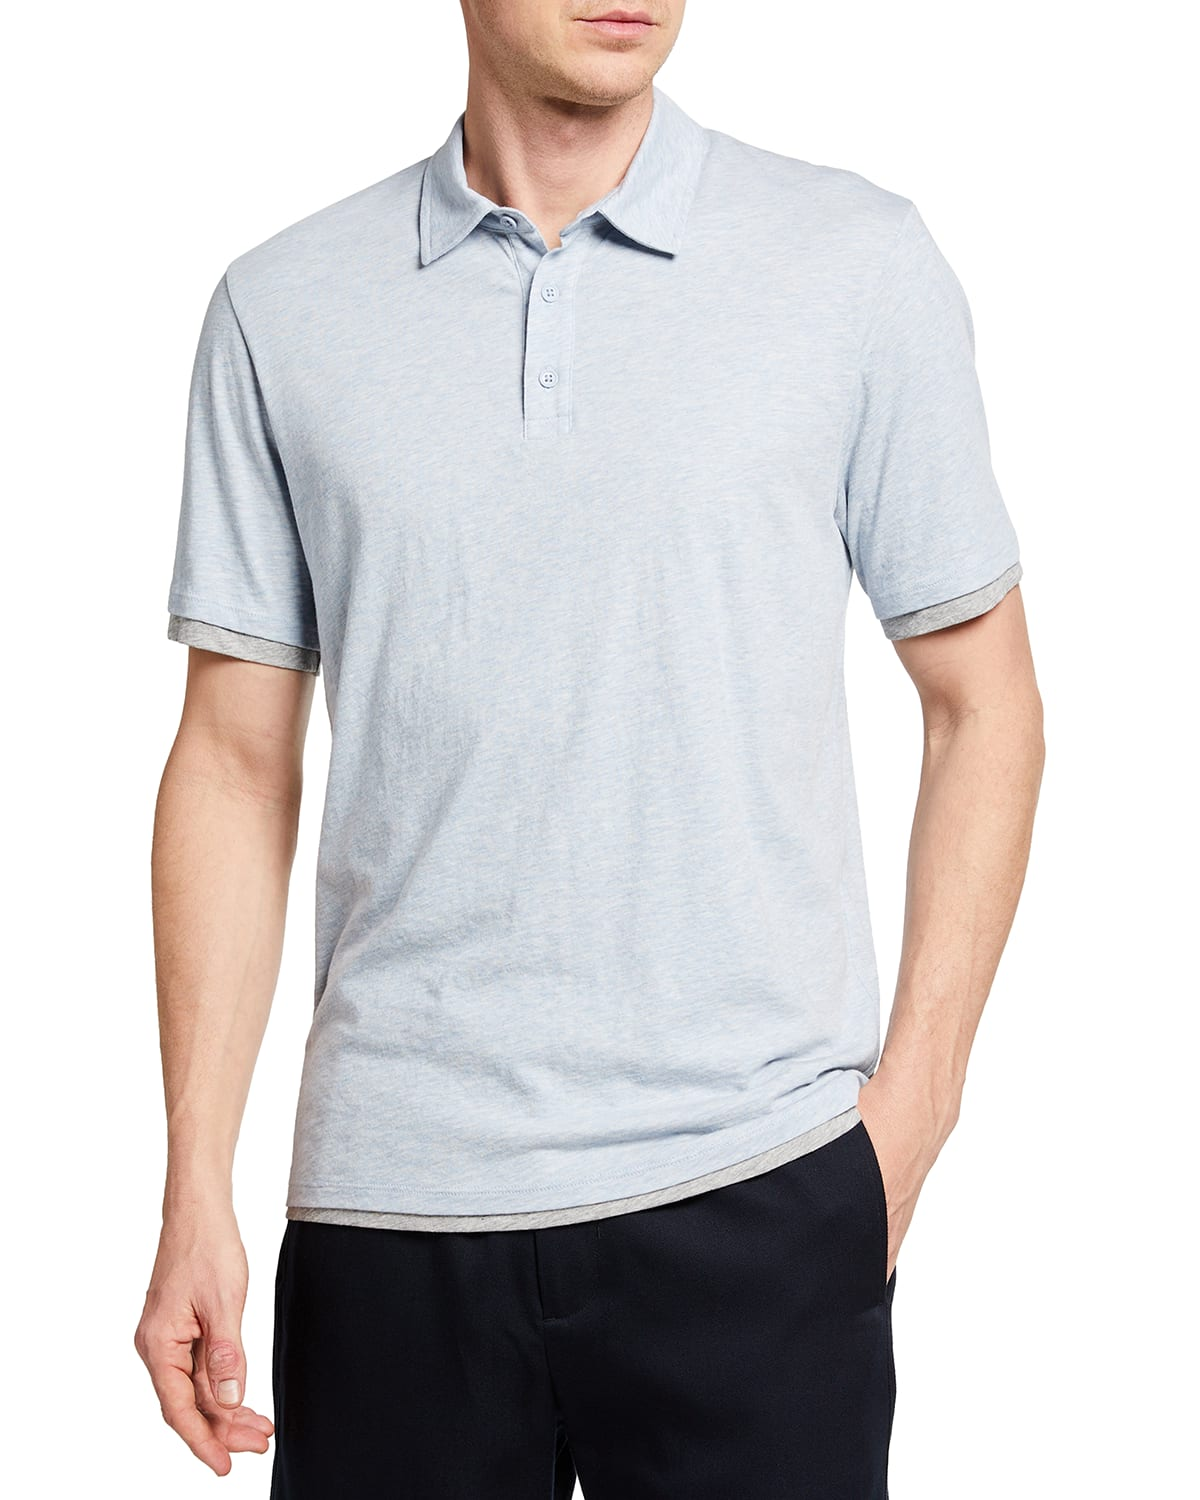 Men's Double-Layer Jersey Polo Shirt